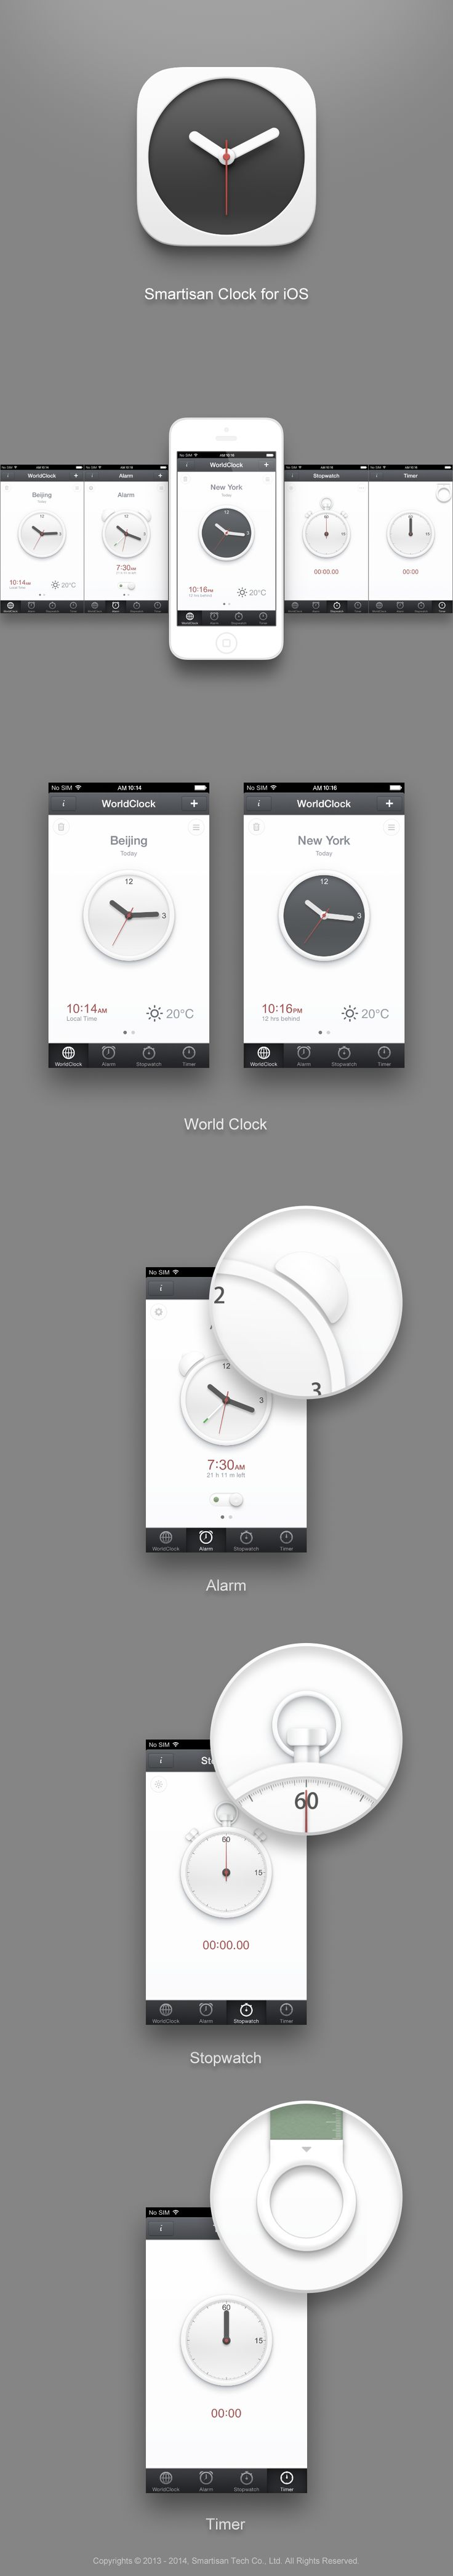 Smartisanos_clock #mobile #ui #design